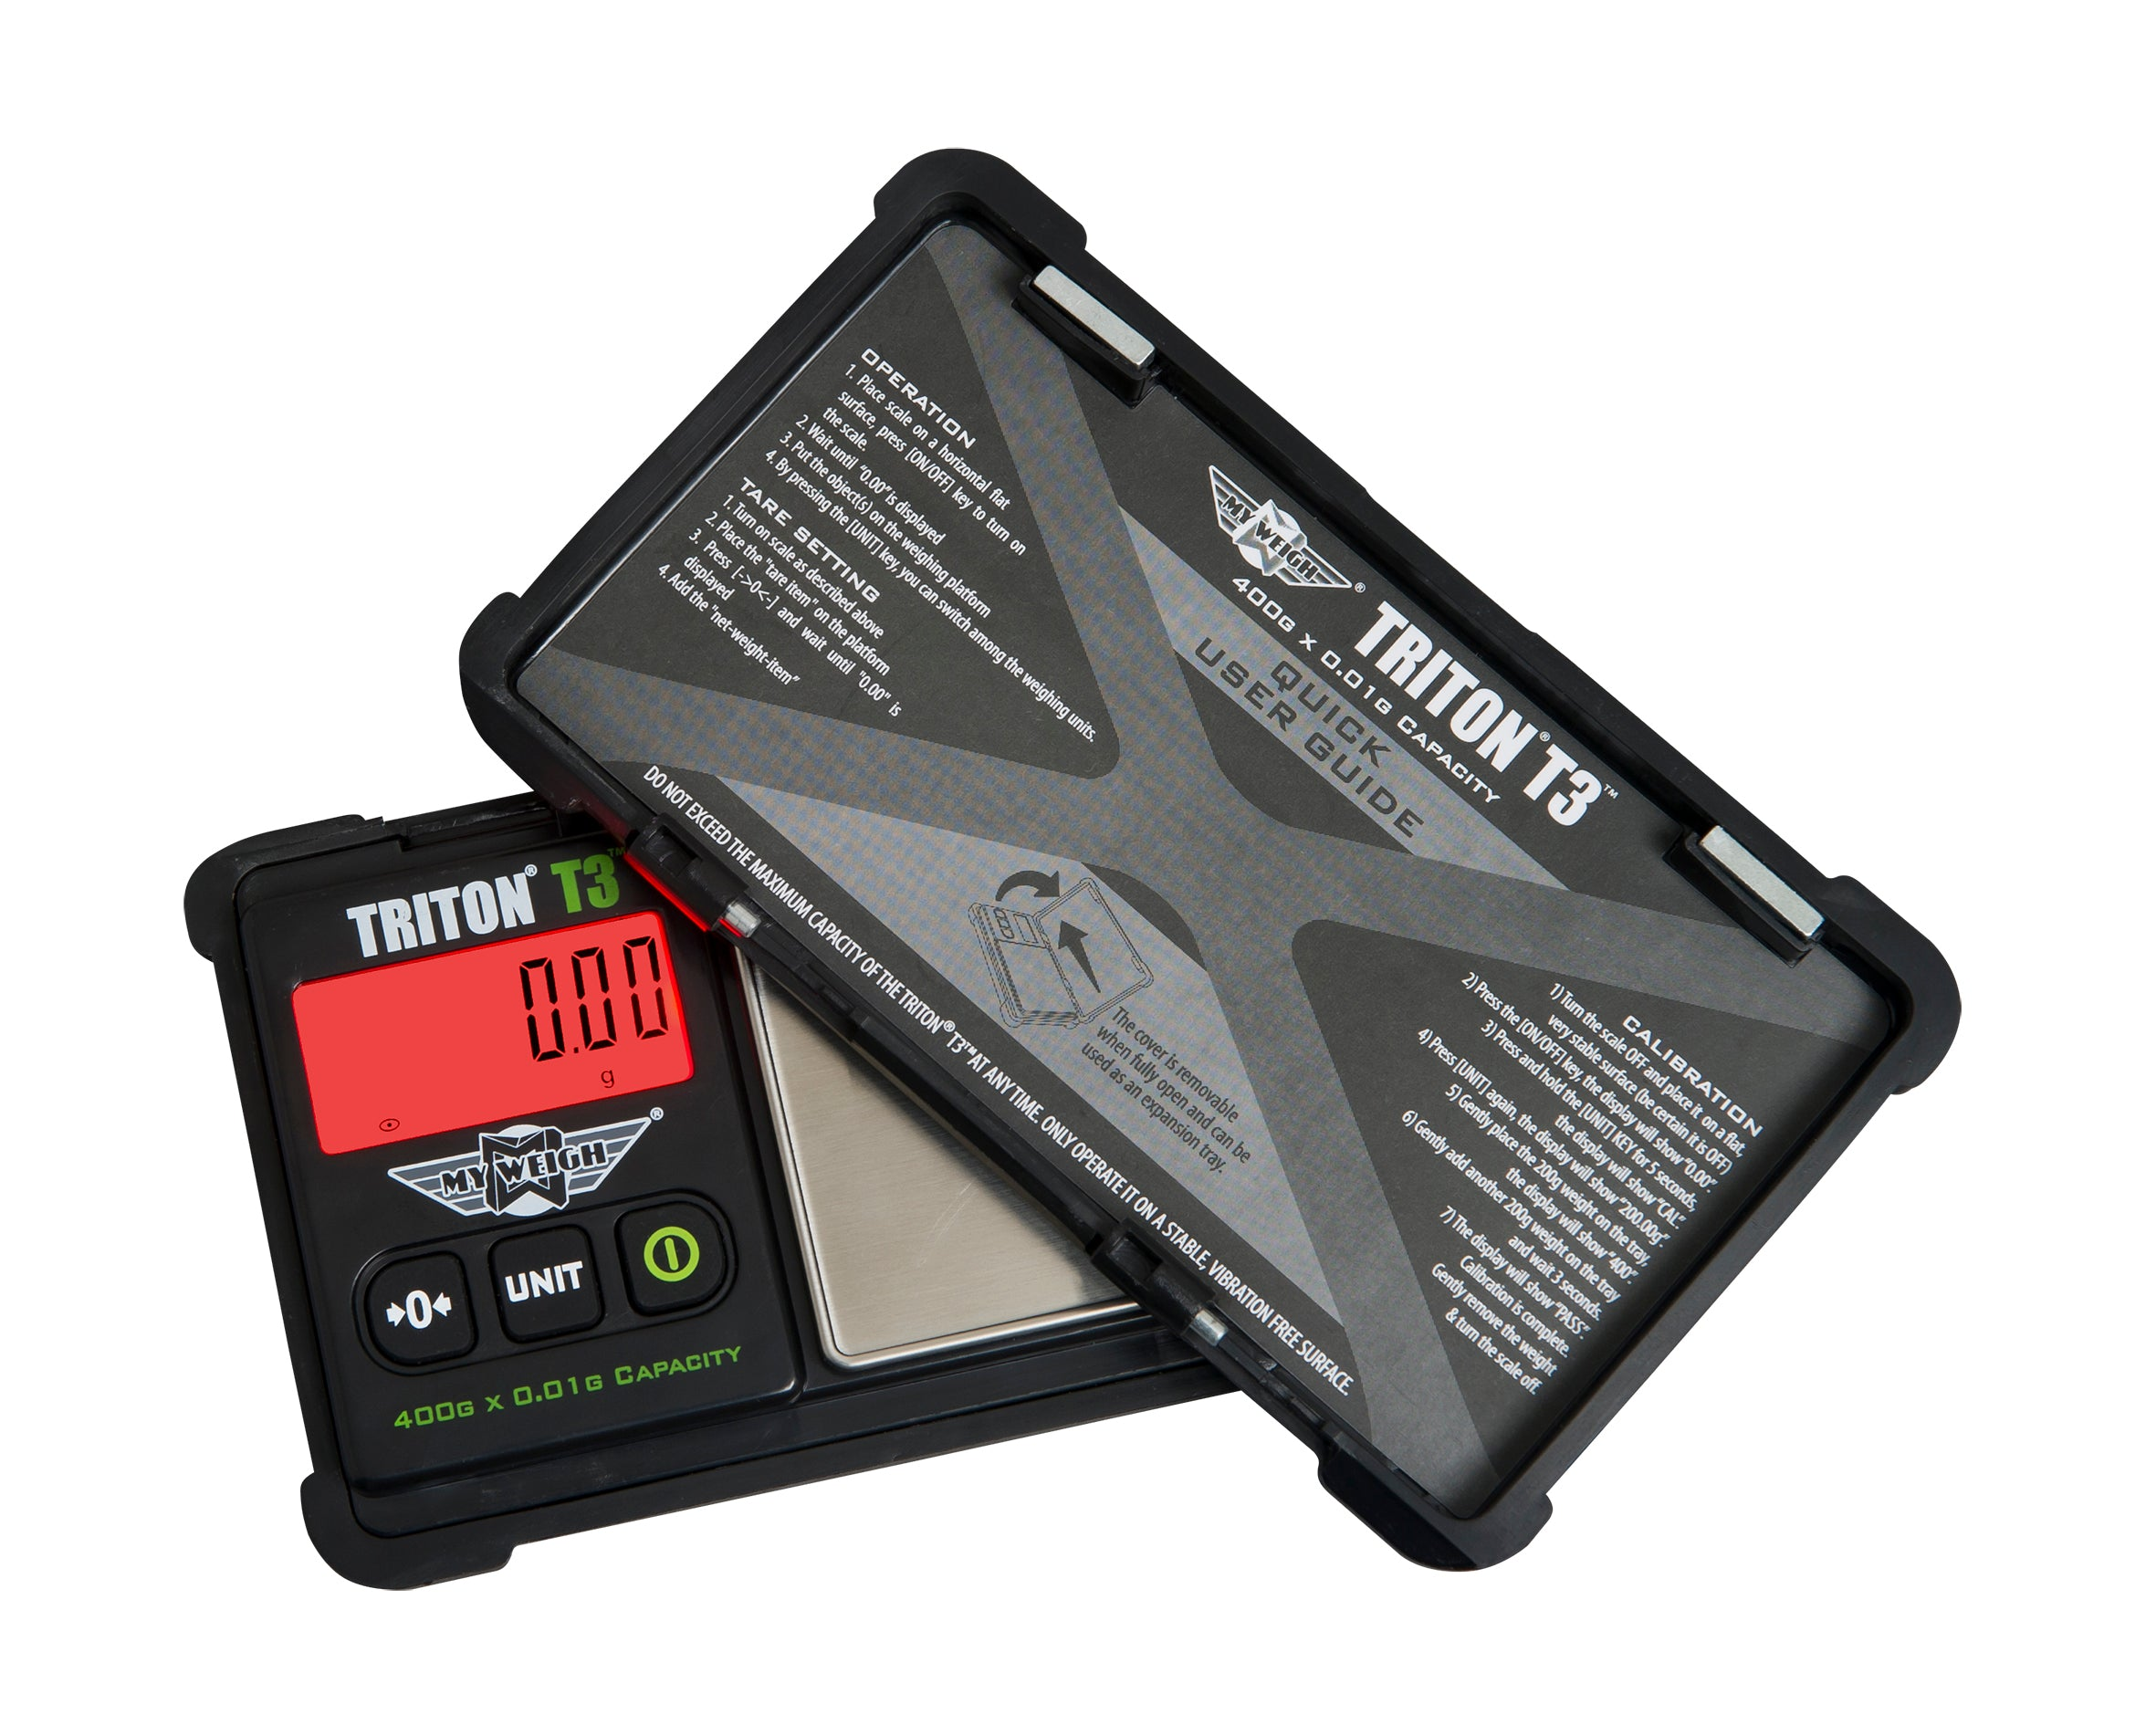 TT3-400 My Weigh Triton T3 Series 400g x 0.01g